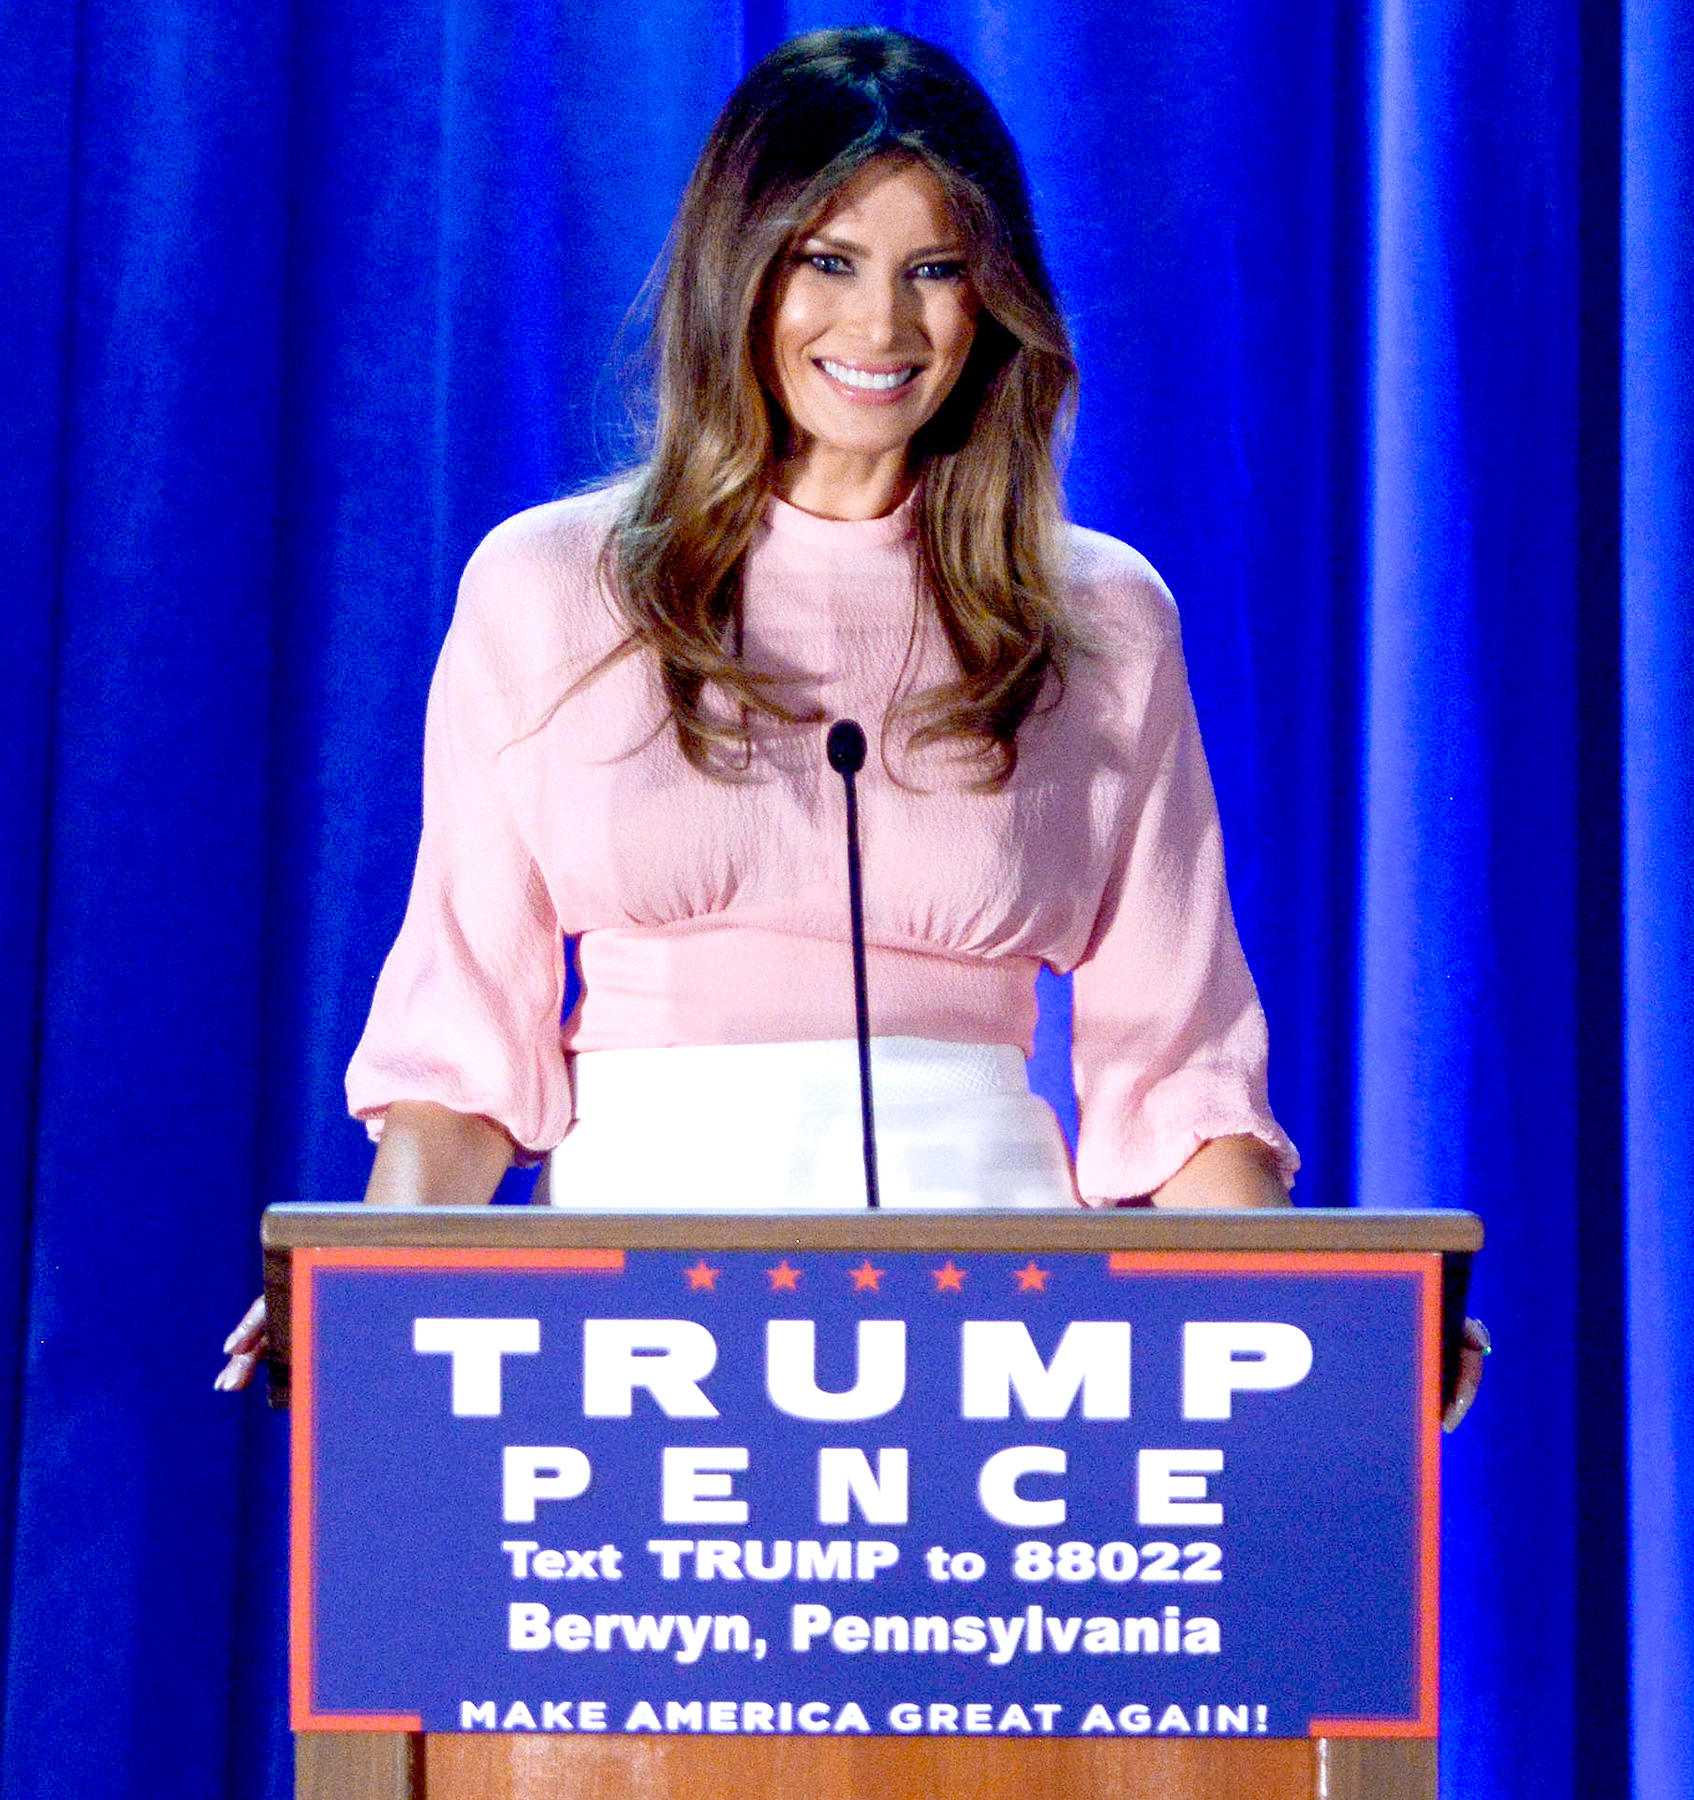 Melania Trump, wife of Republican presidential nominee Donald Trump, speaks at a rally for Donald Trump at the Main Line Sports Center on Nov. 3, 2016, in Berwyn, PA.